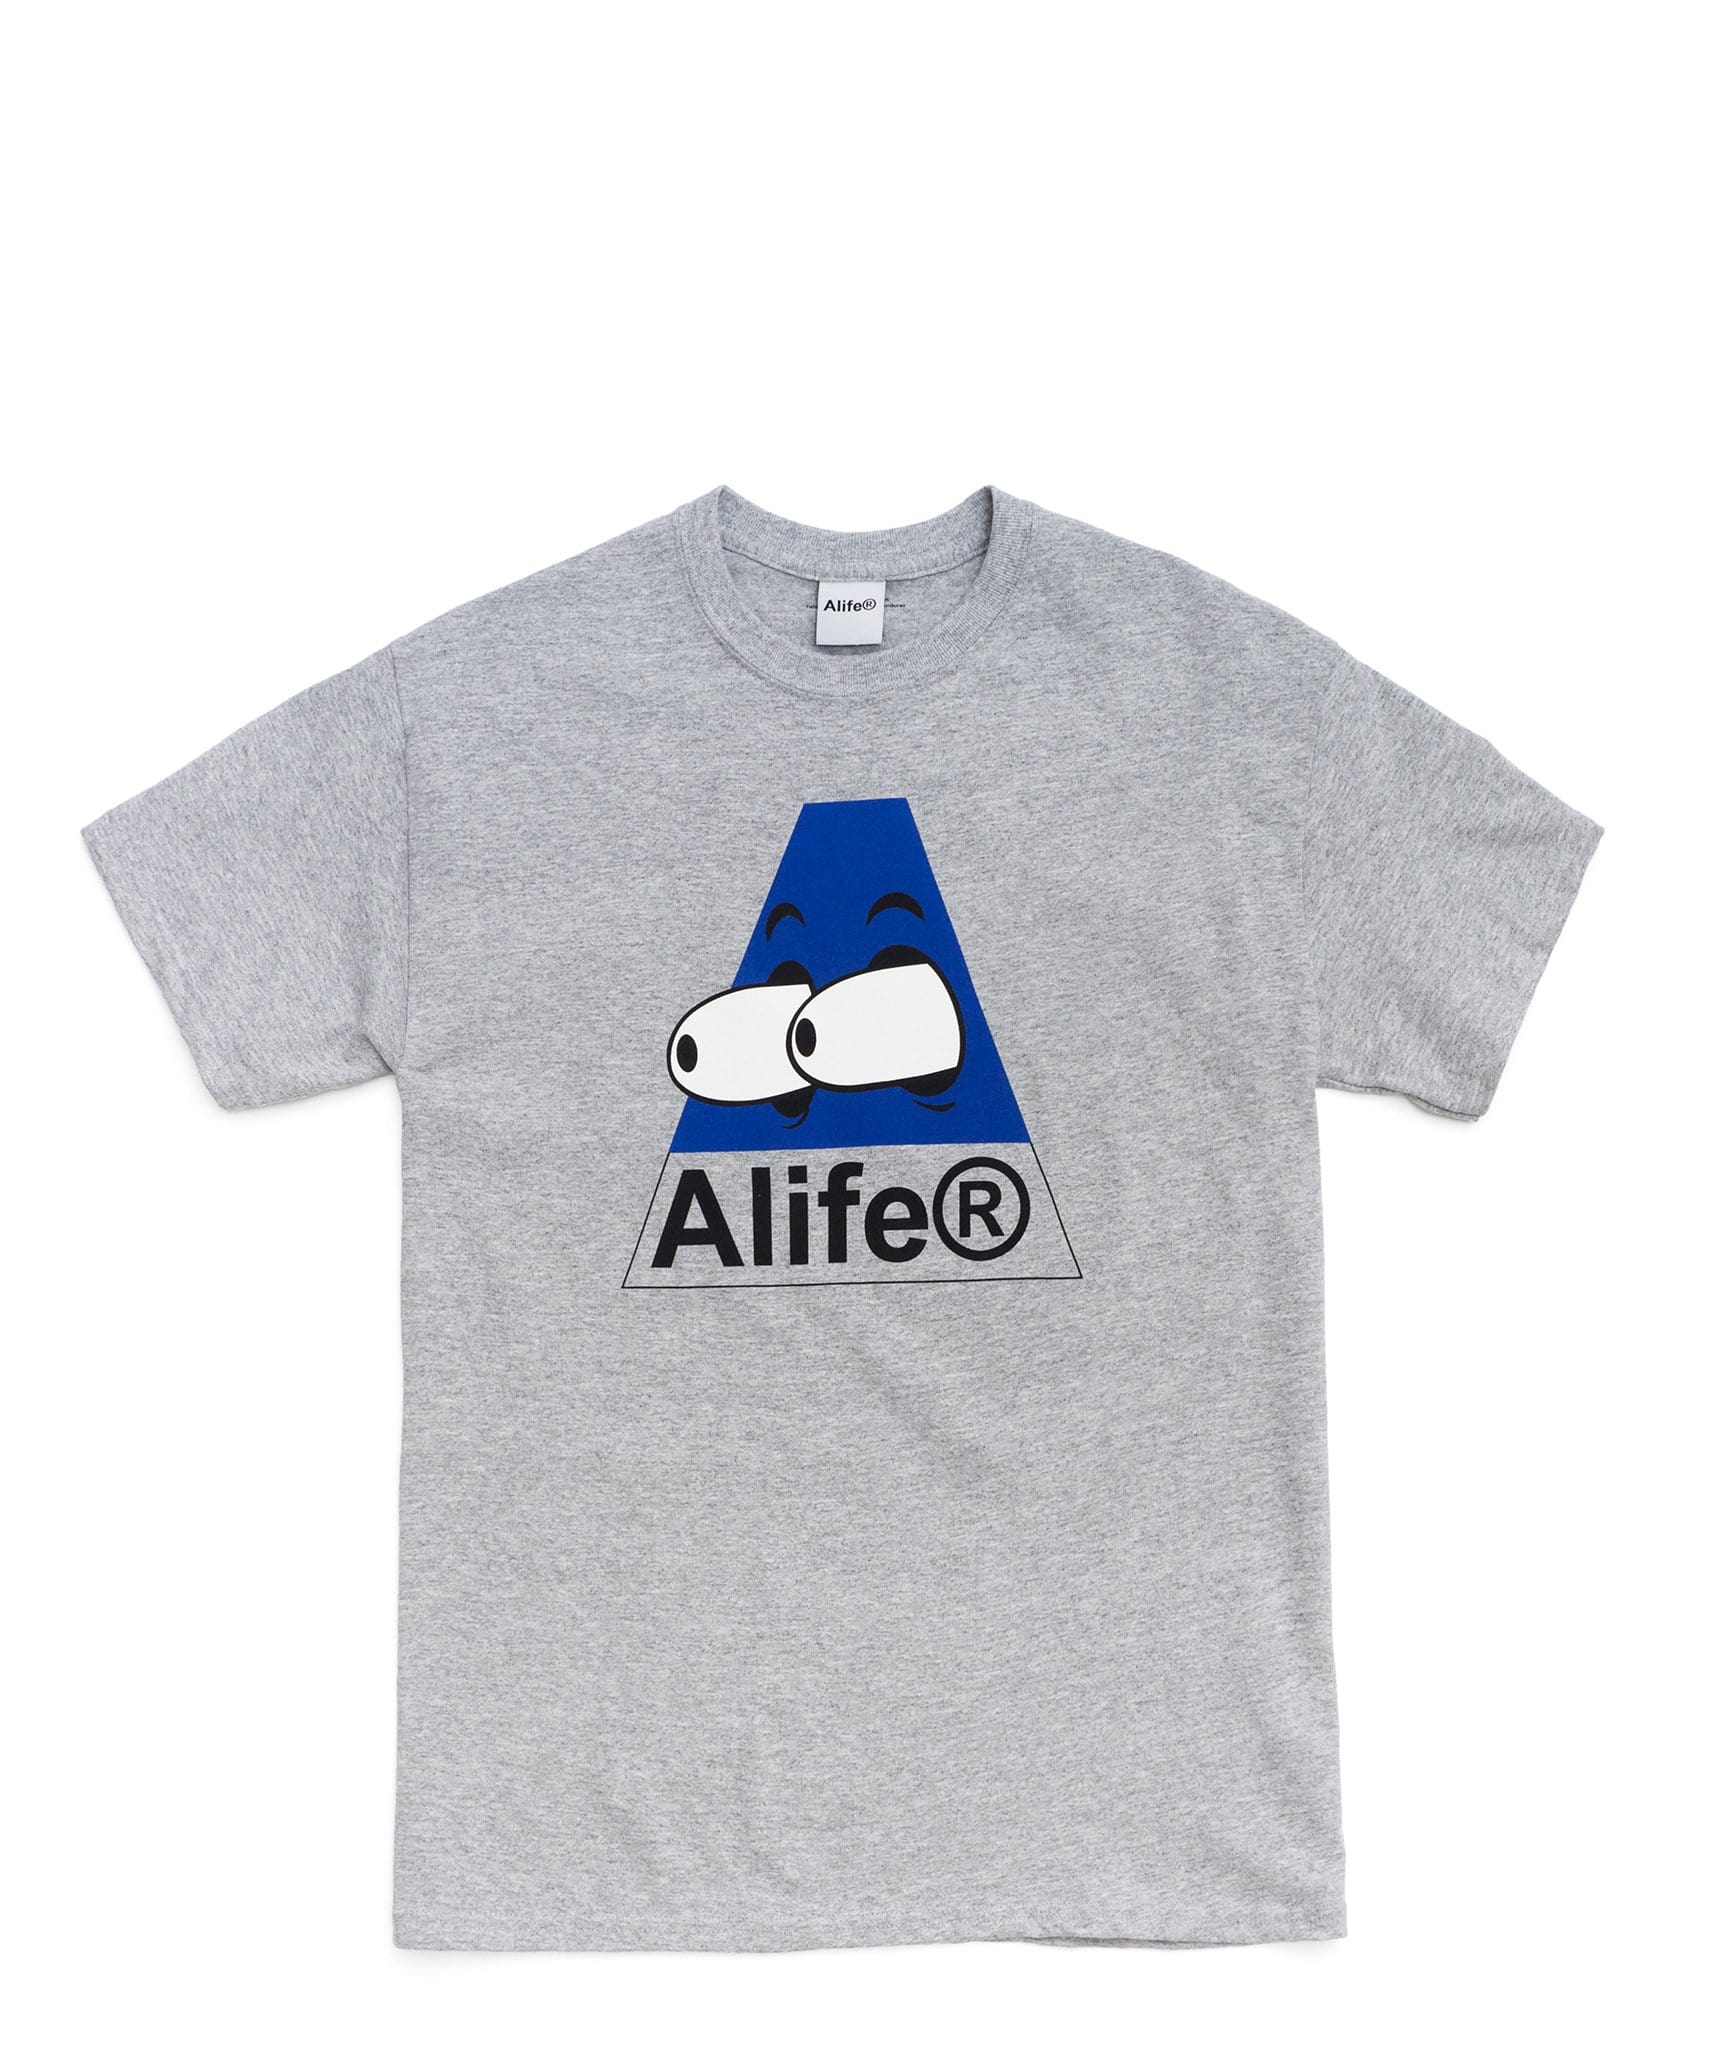 Alife Bugged Out Tee